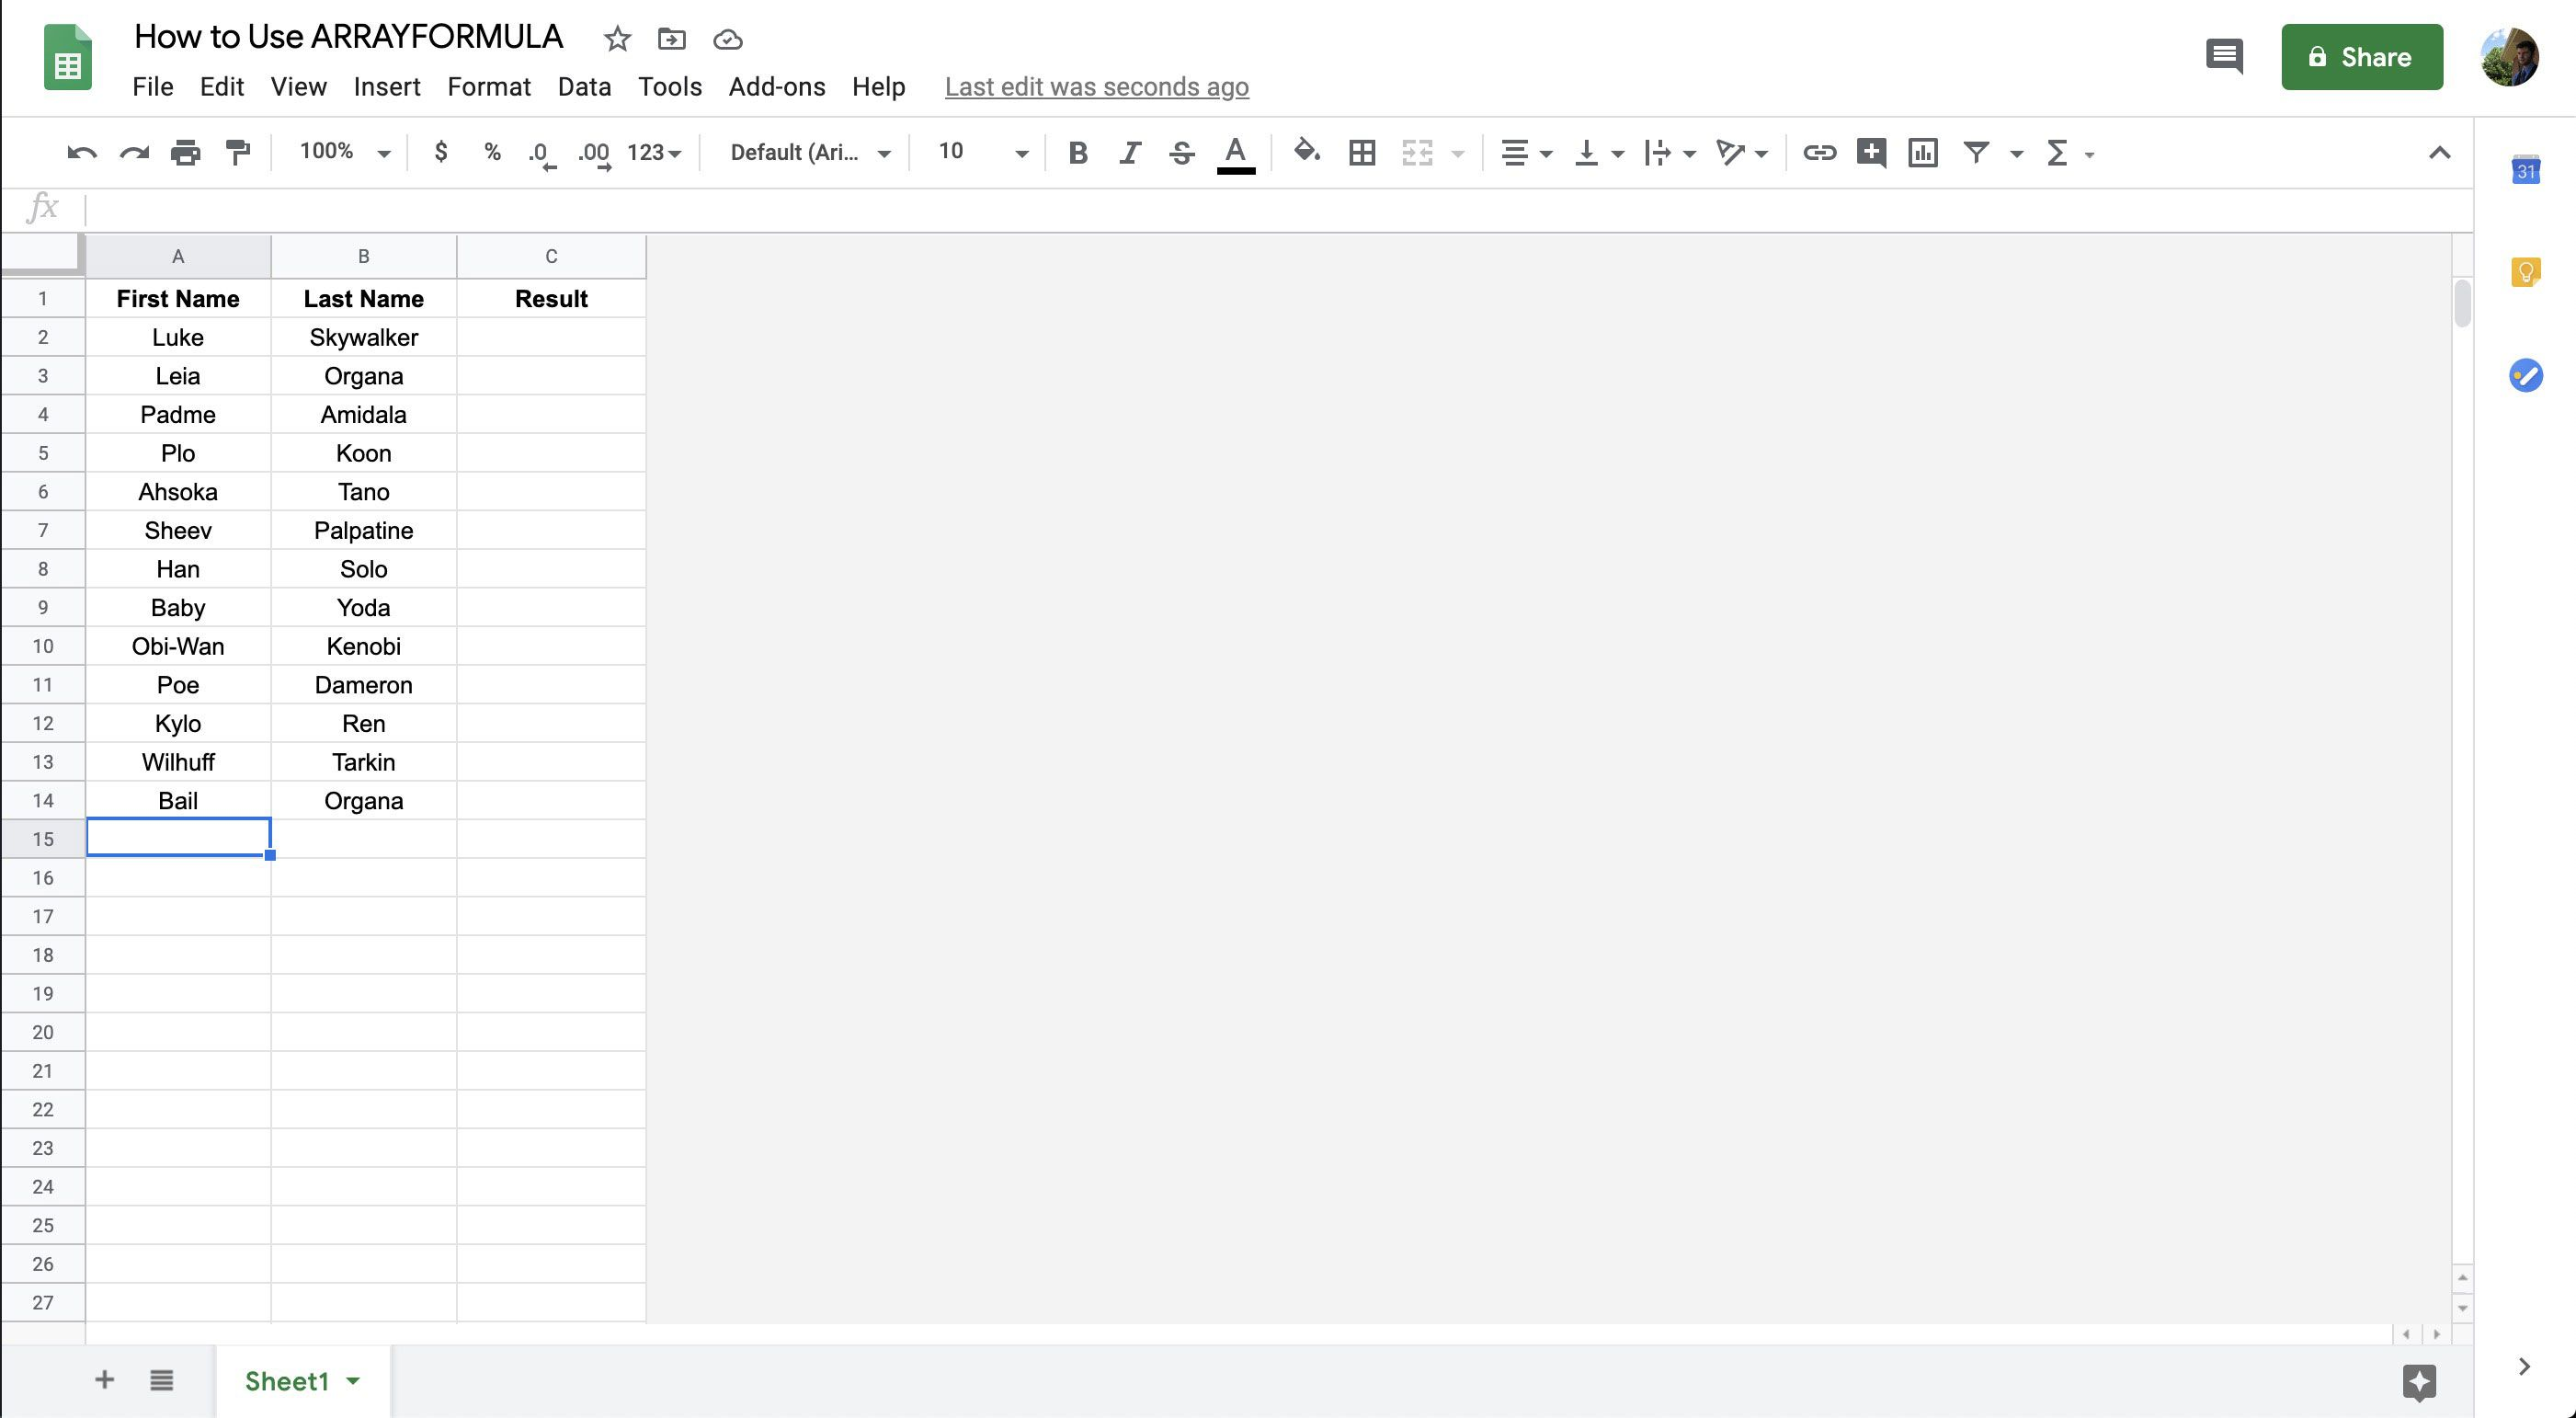 A spreadsheet in Google Sheets